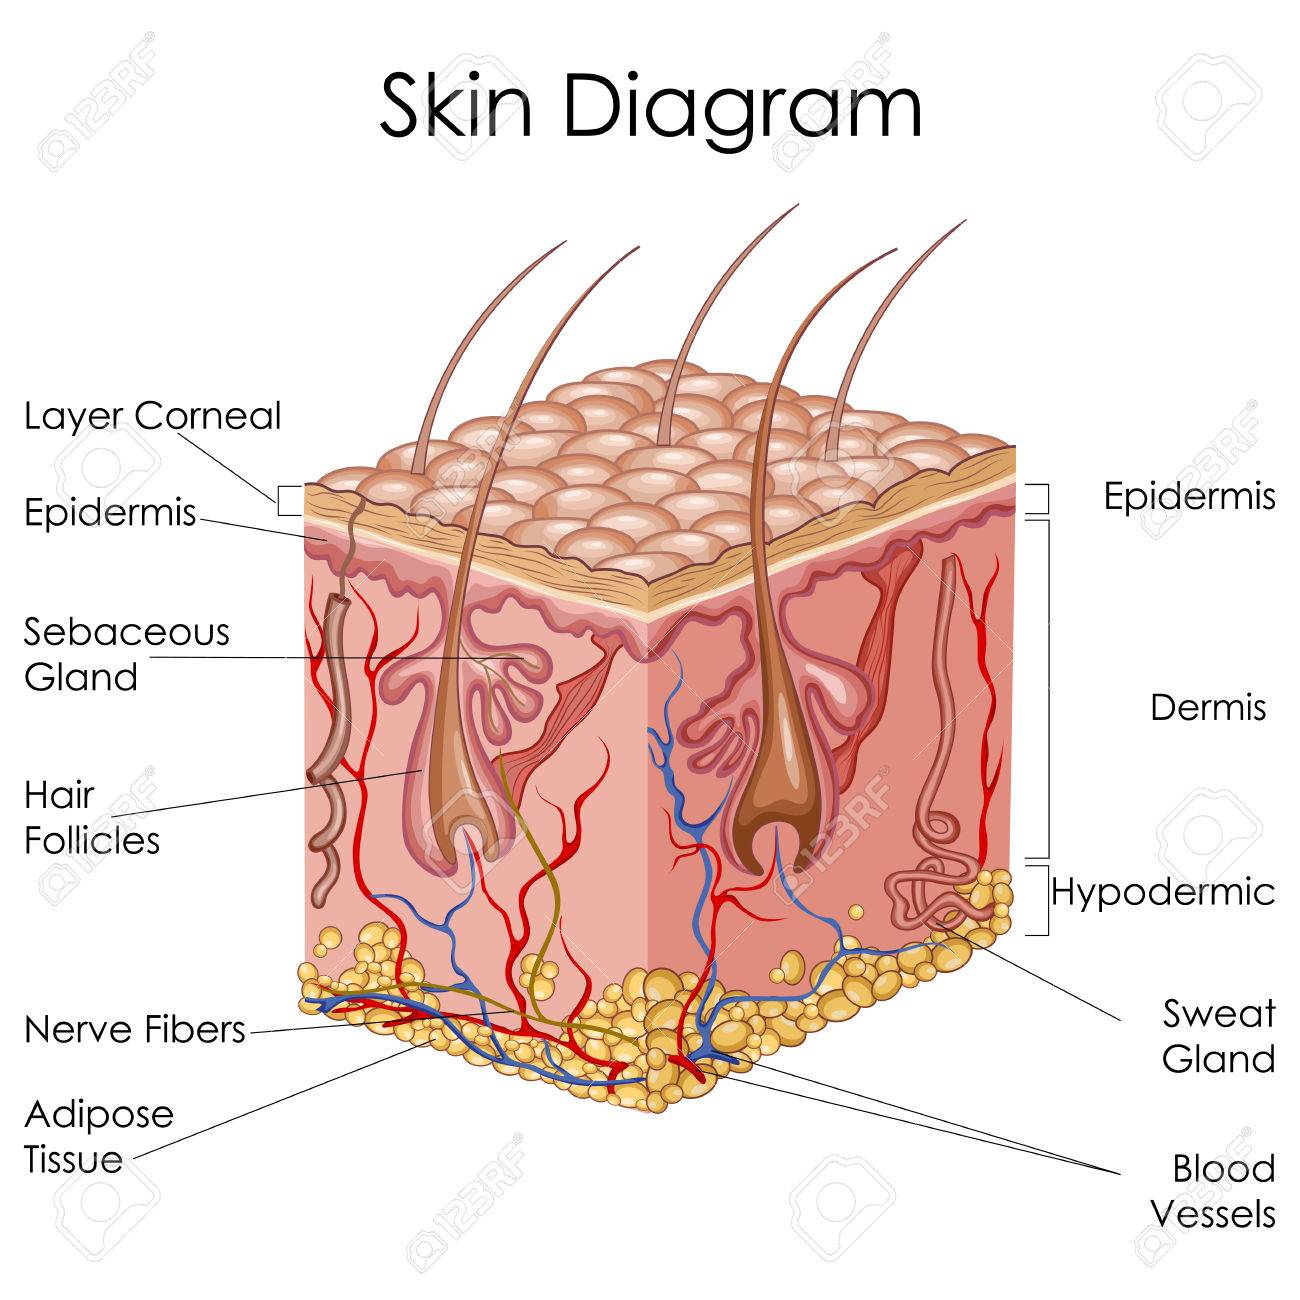 Skin Diagram: Cross Section for Scalp